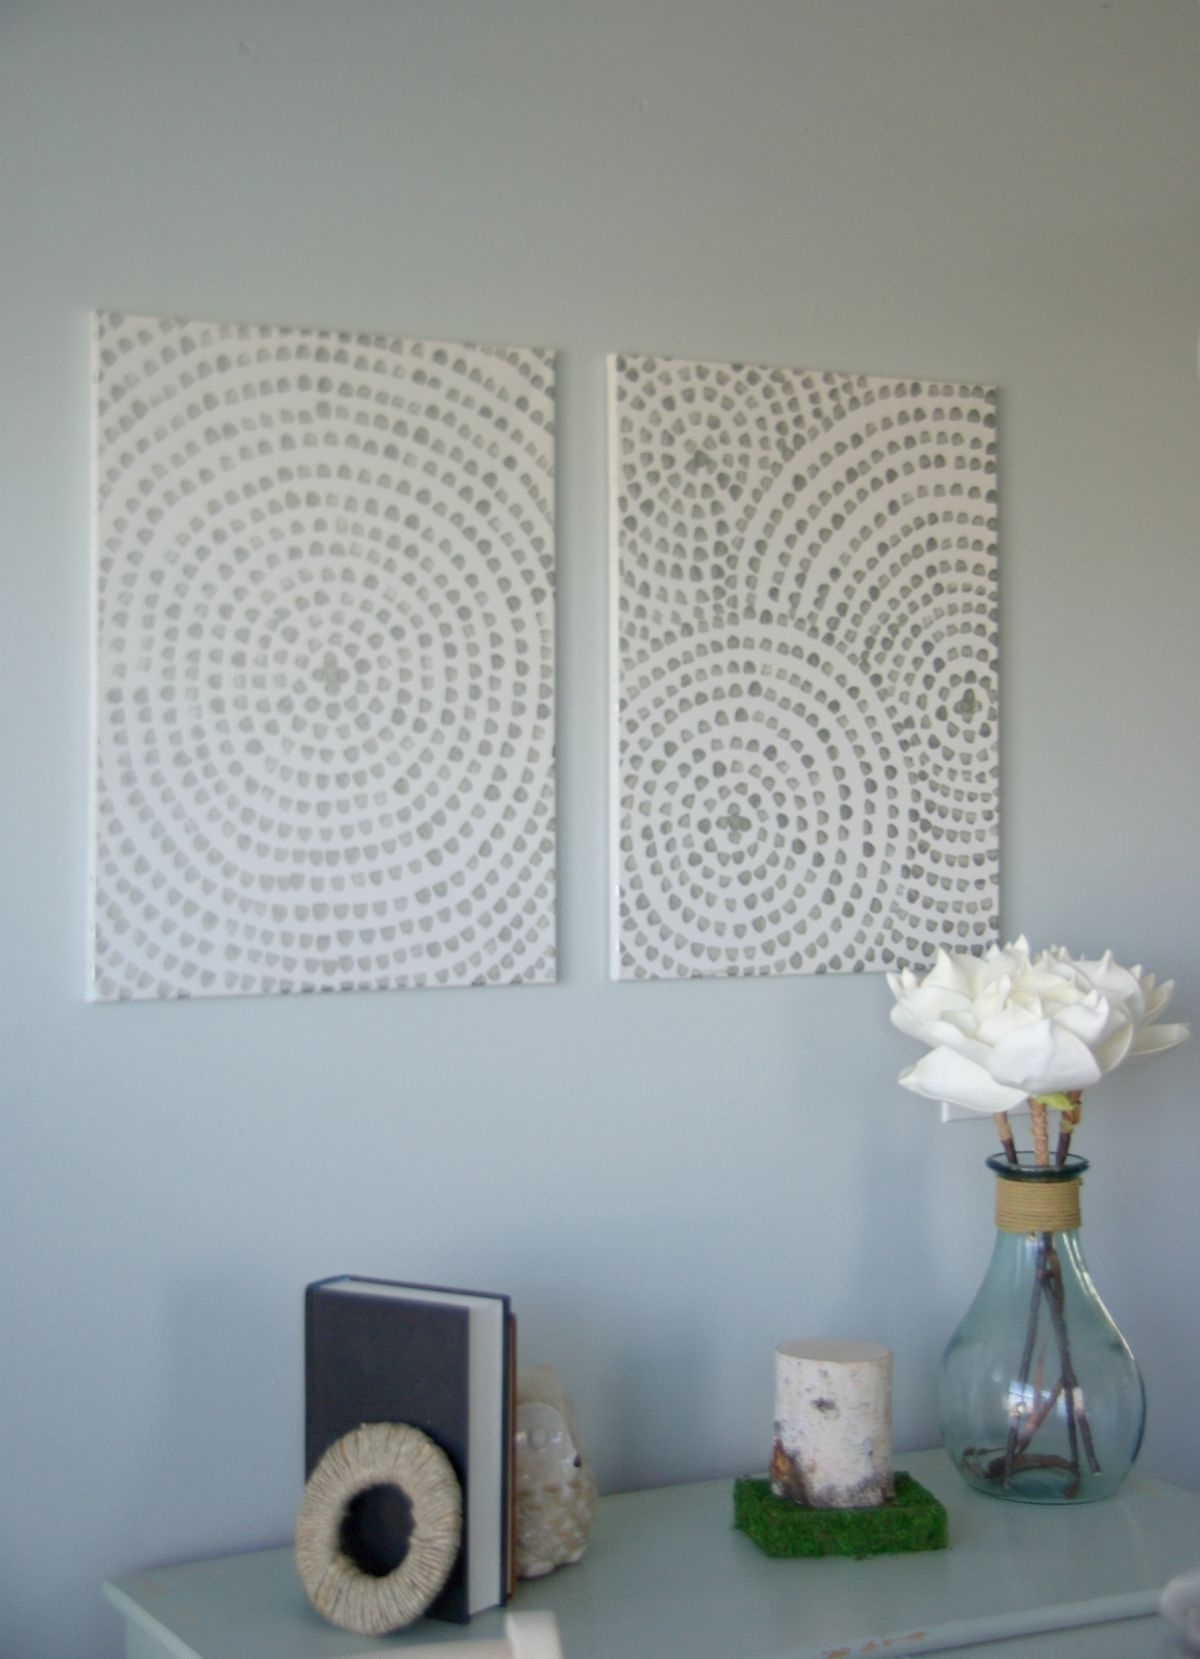 Diy For Homemade Wall Art With Fabric (View 3 of 15)